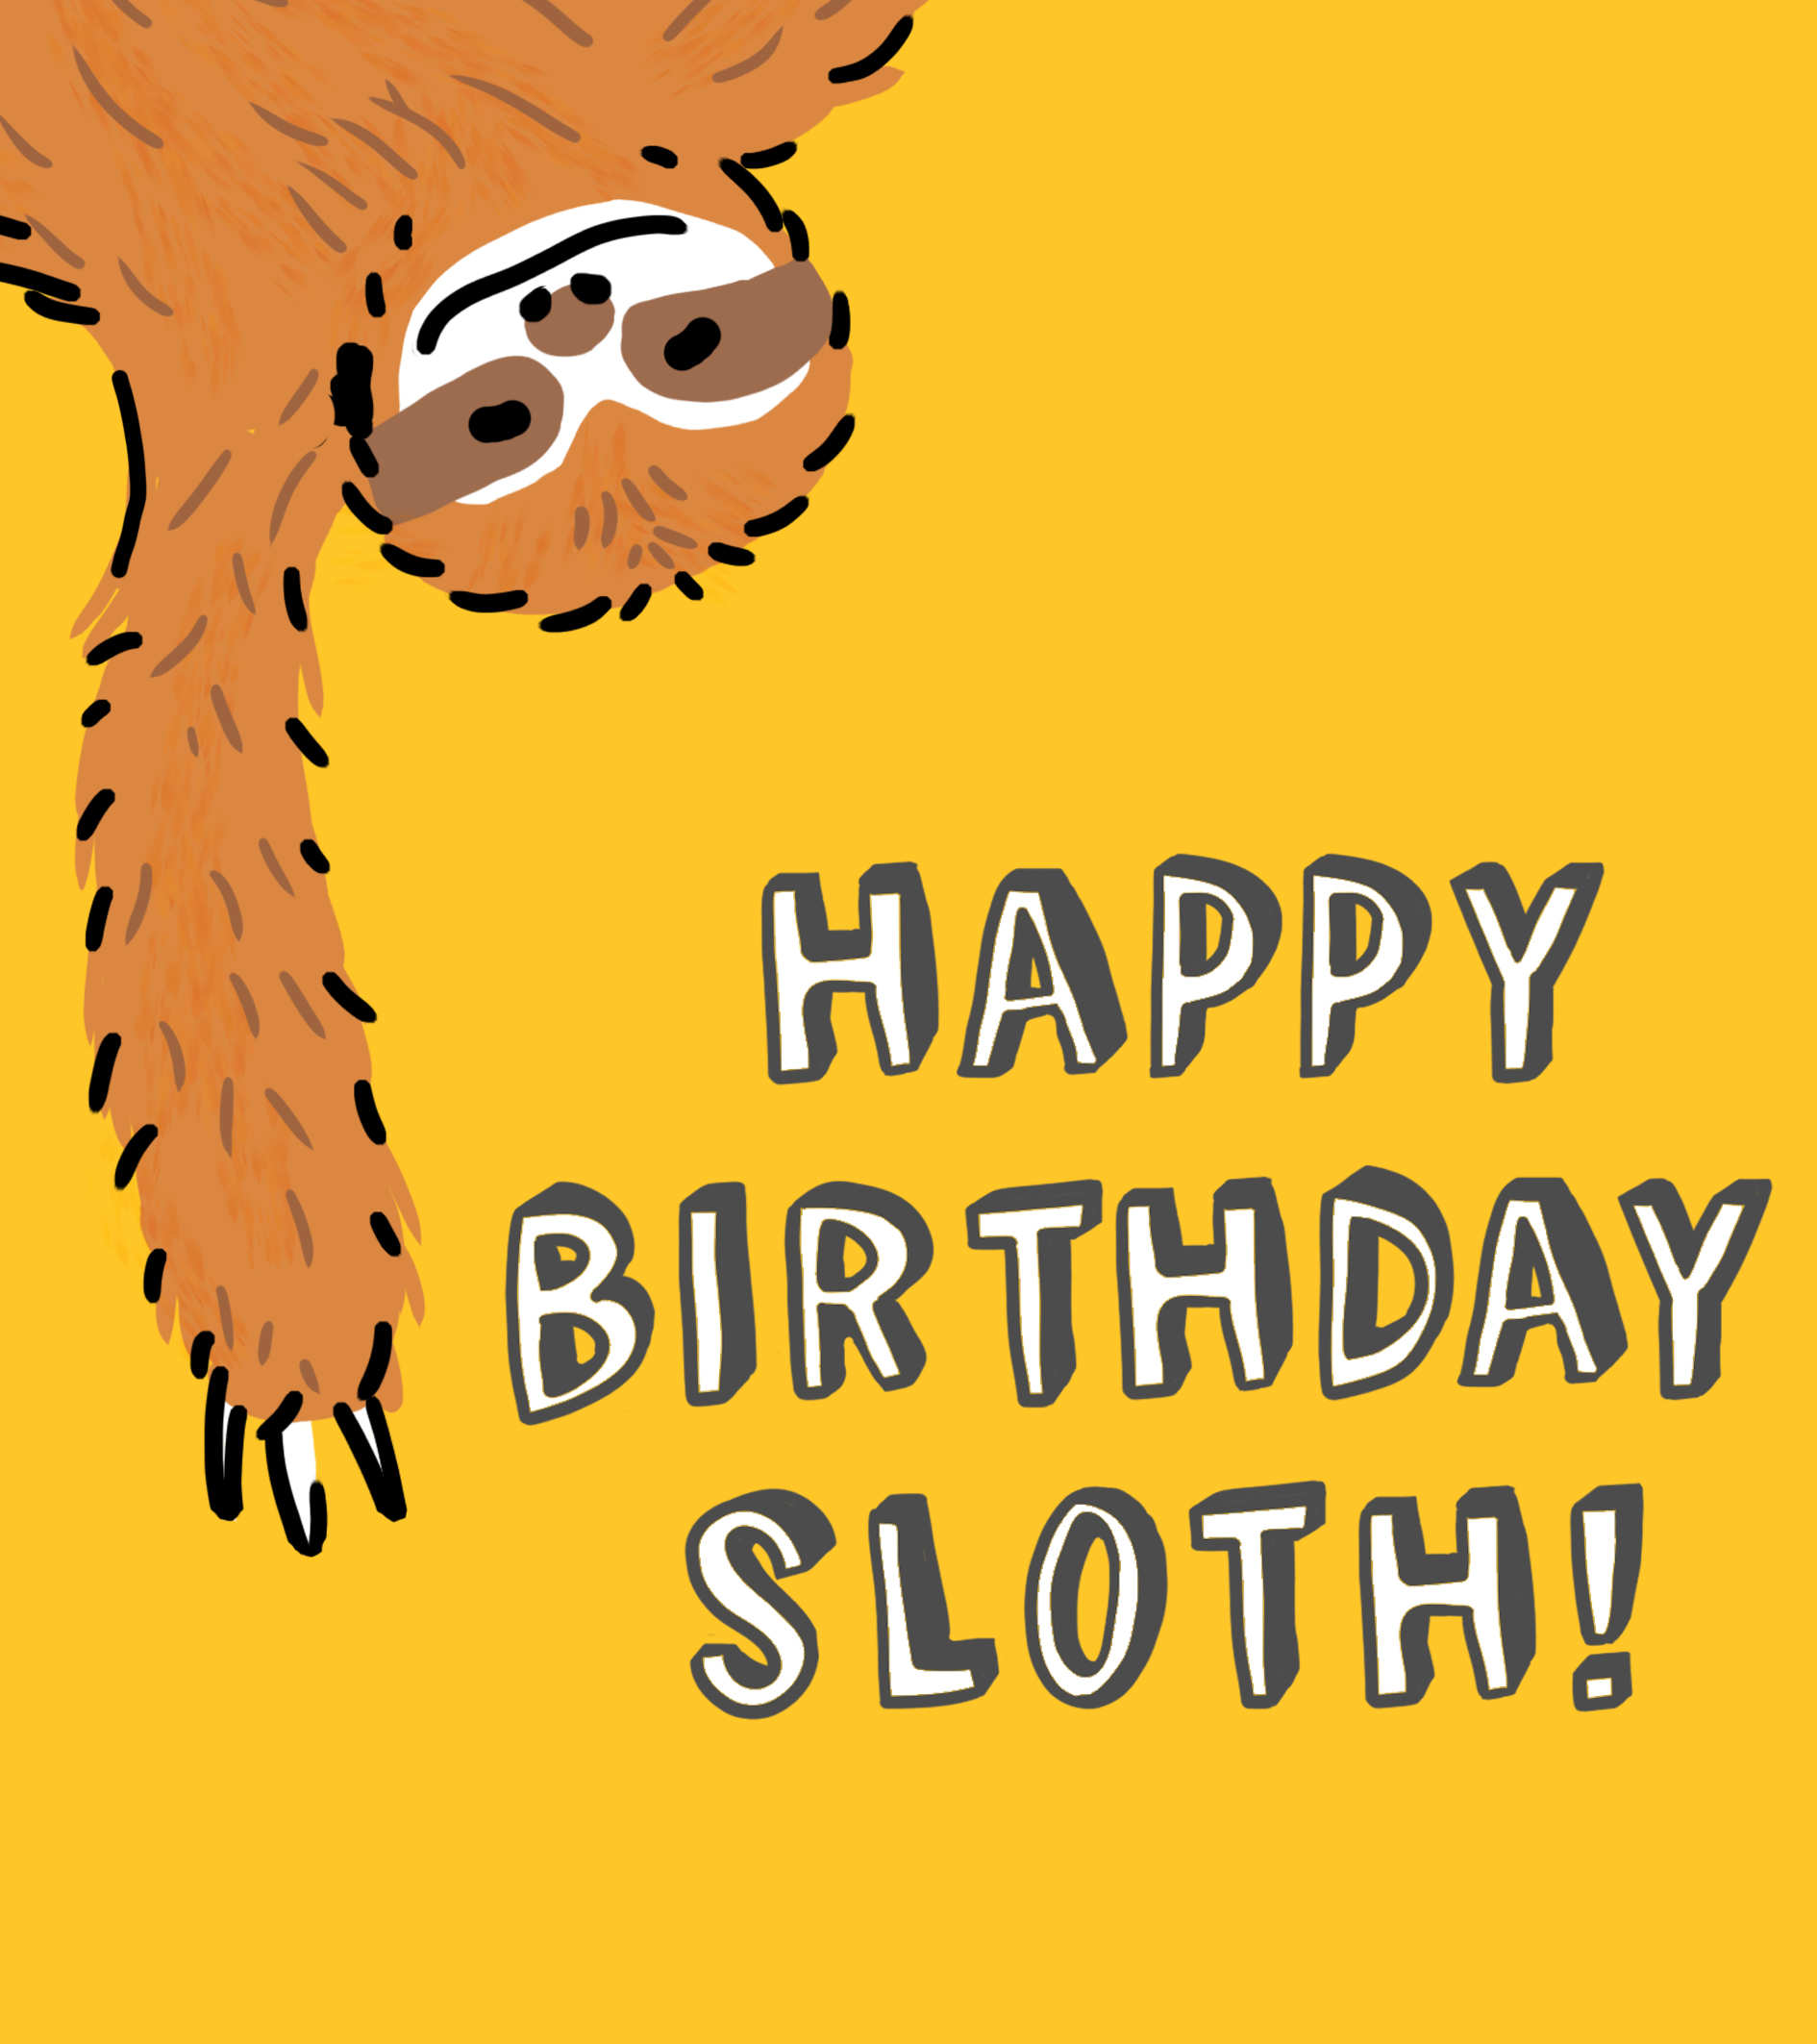 Izzi Fitchett sloth.jpg